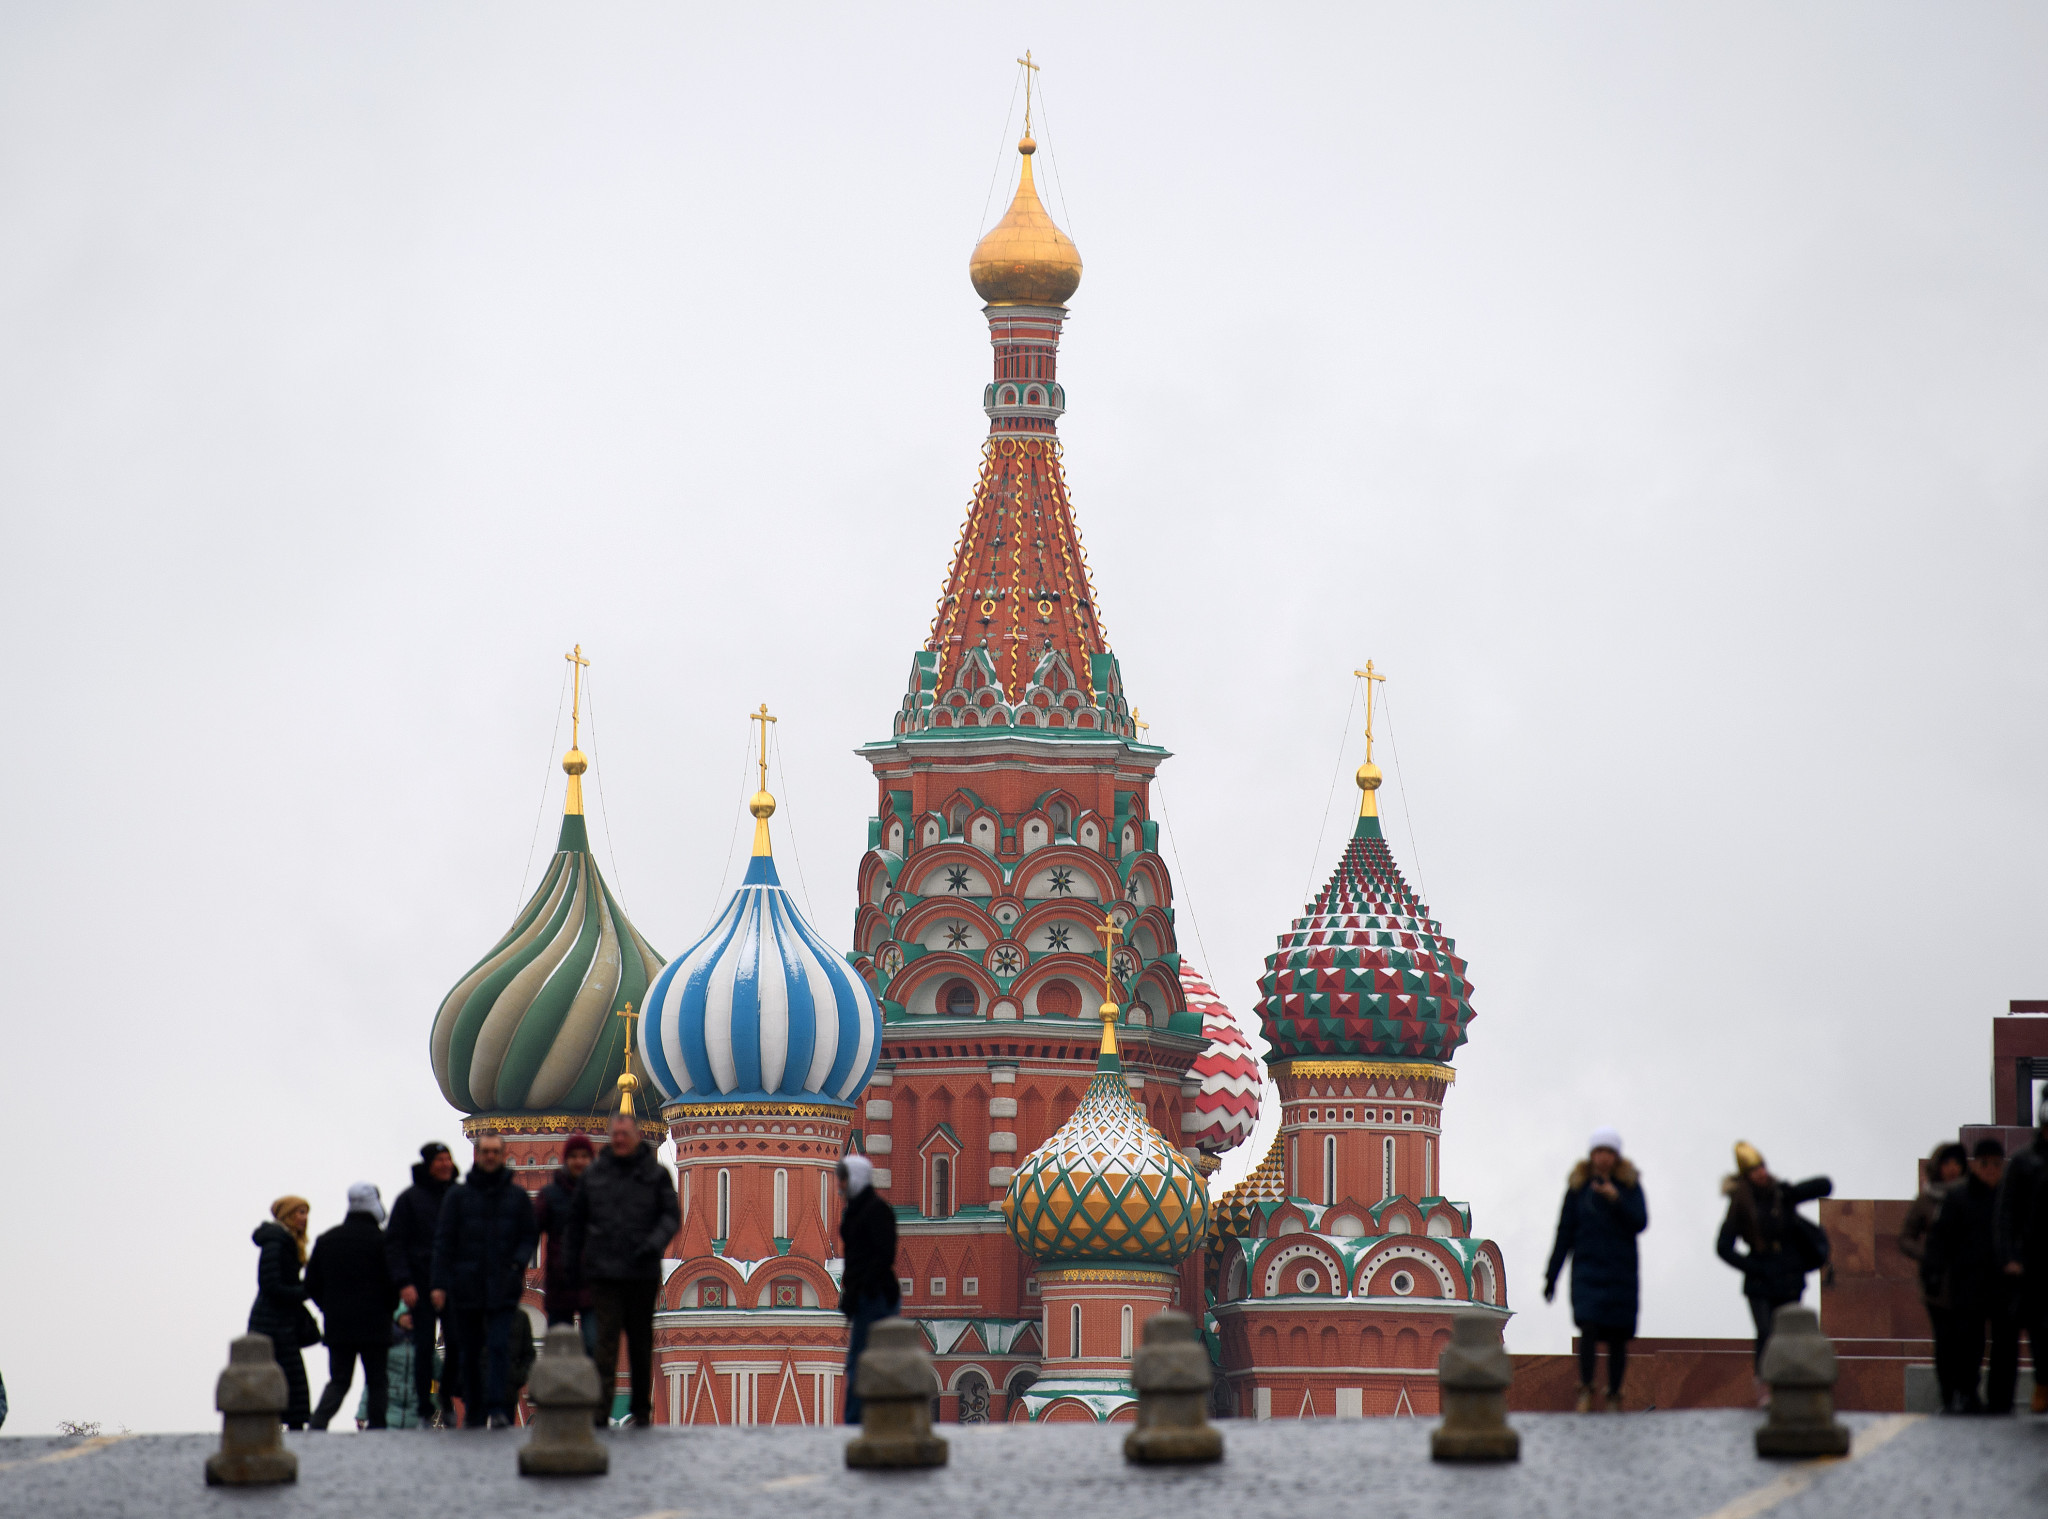 Moscow set for 2018 World Cup draw amid litany of issues